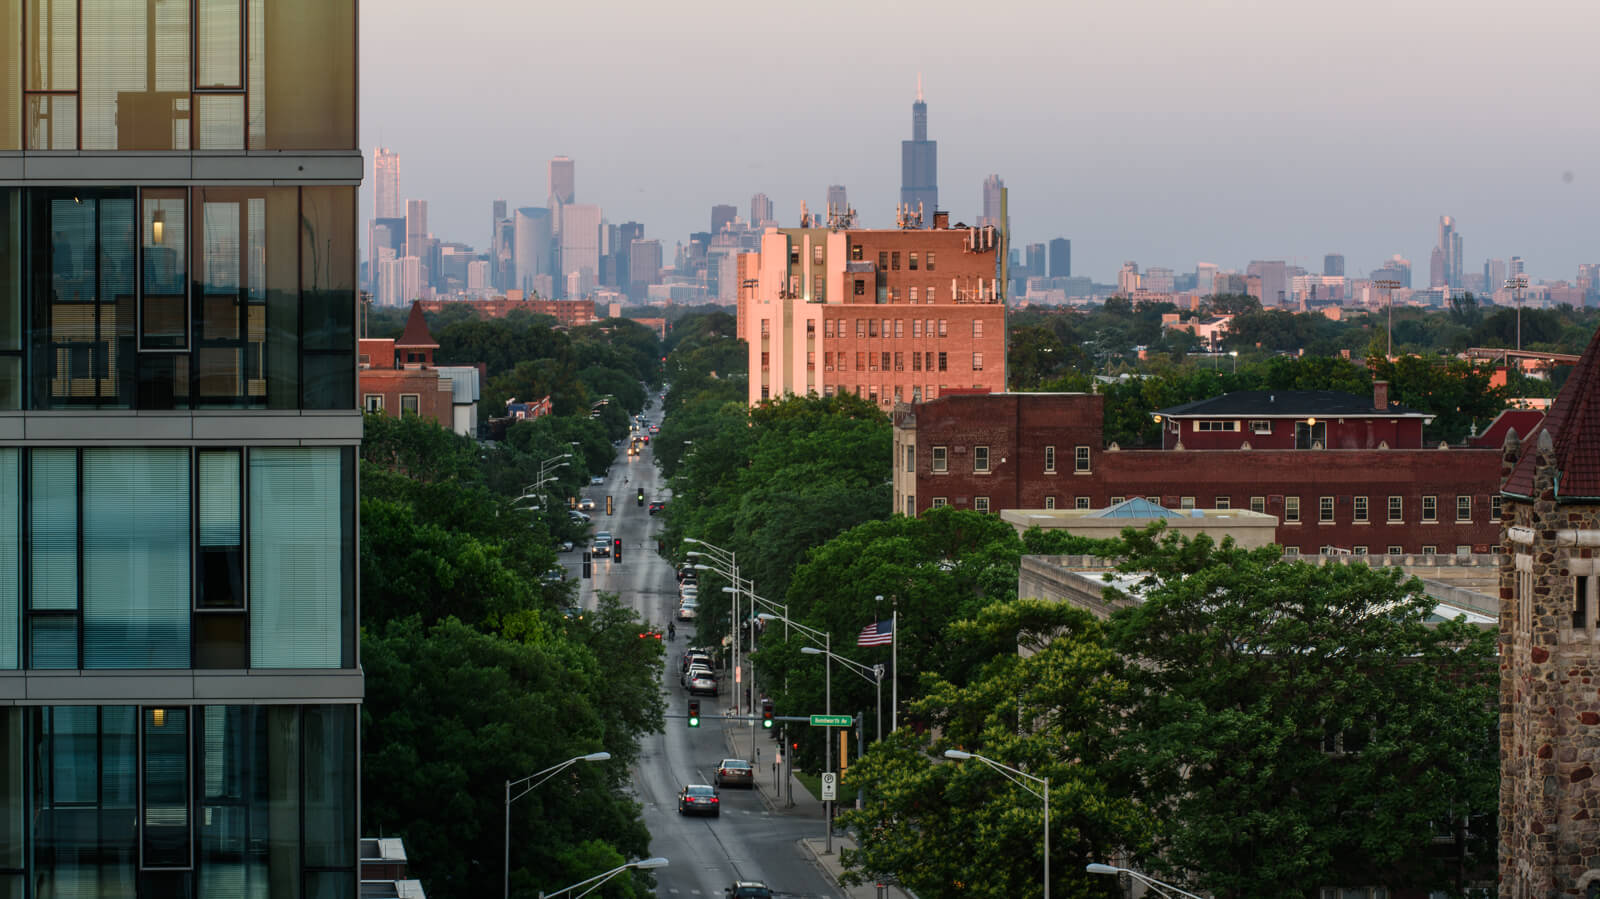 View of Chicago from 1010 Lake Street, Oak Park, IL